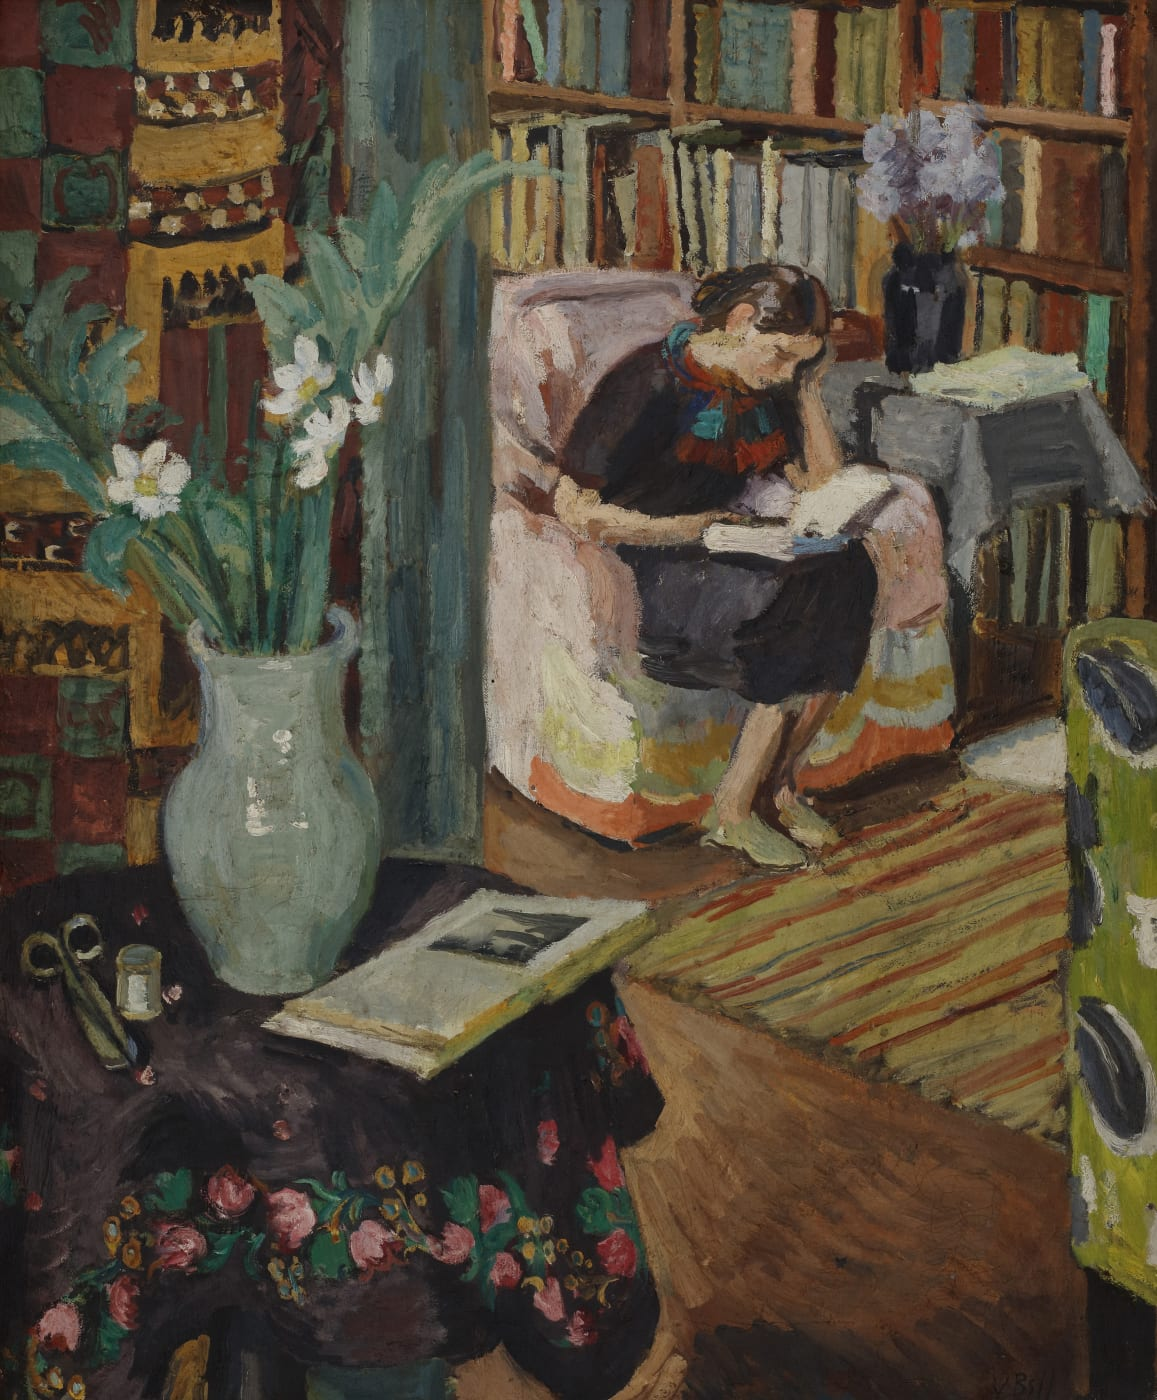 Painting of Angelica Garnett, Vanessa Bell and Duncan Grant's daughter. In The Studio at Charleston, painted by Vanessa Bell]